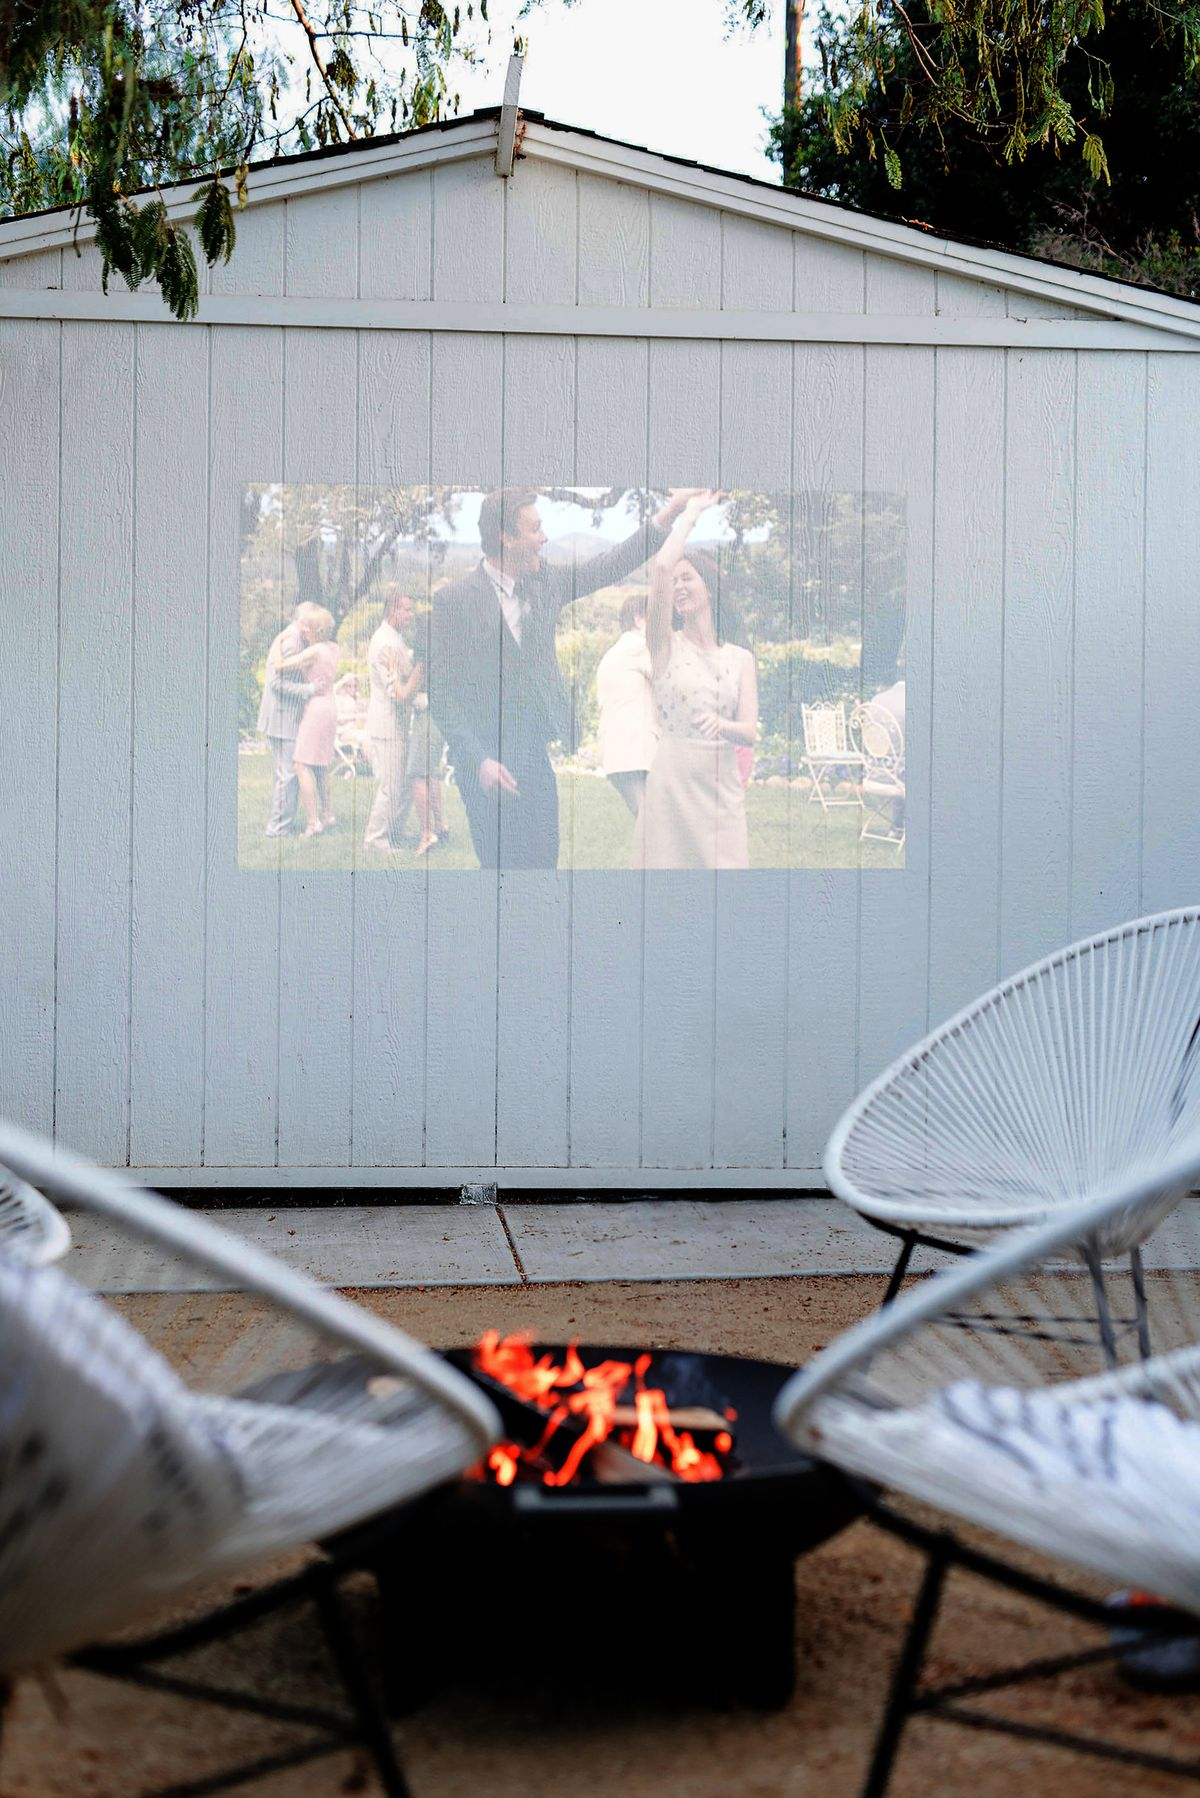 Summer 2021 Outdoor Rooms, Almost Makes Perfect, outdoor projector